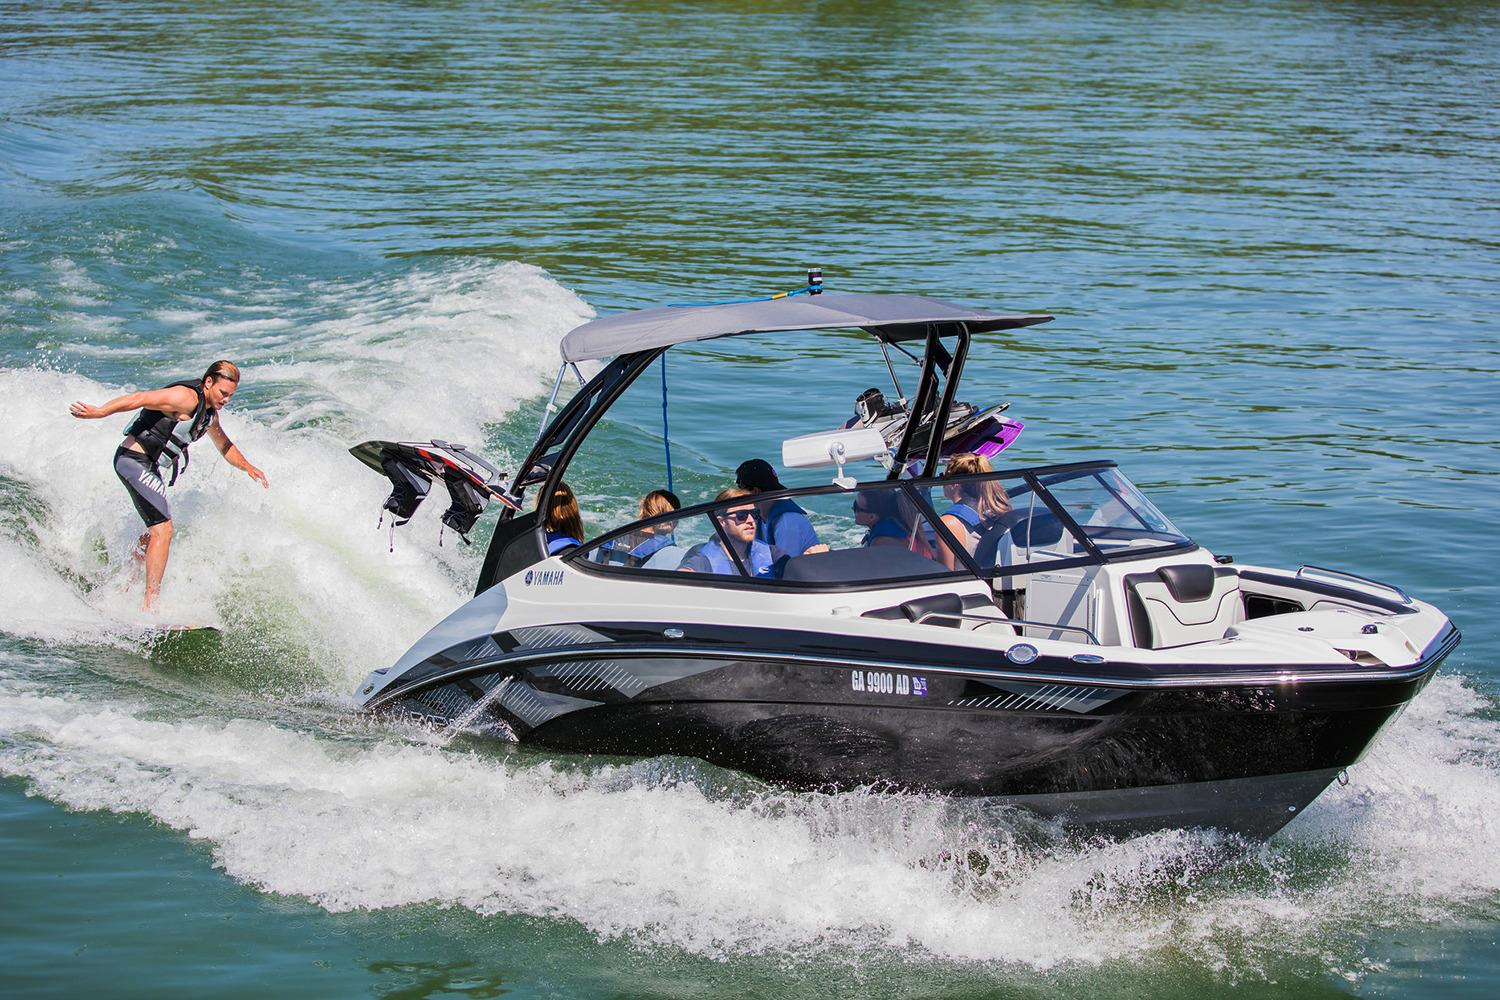 this option in superyacht tenders is a power boat that makes wakeboarding and other watersports possible